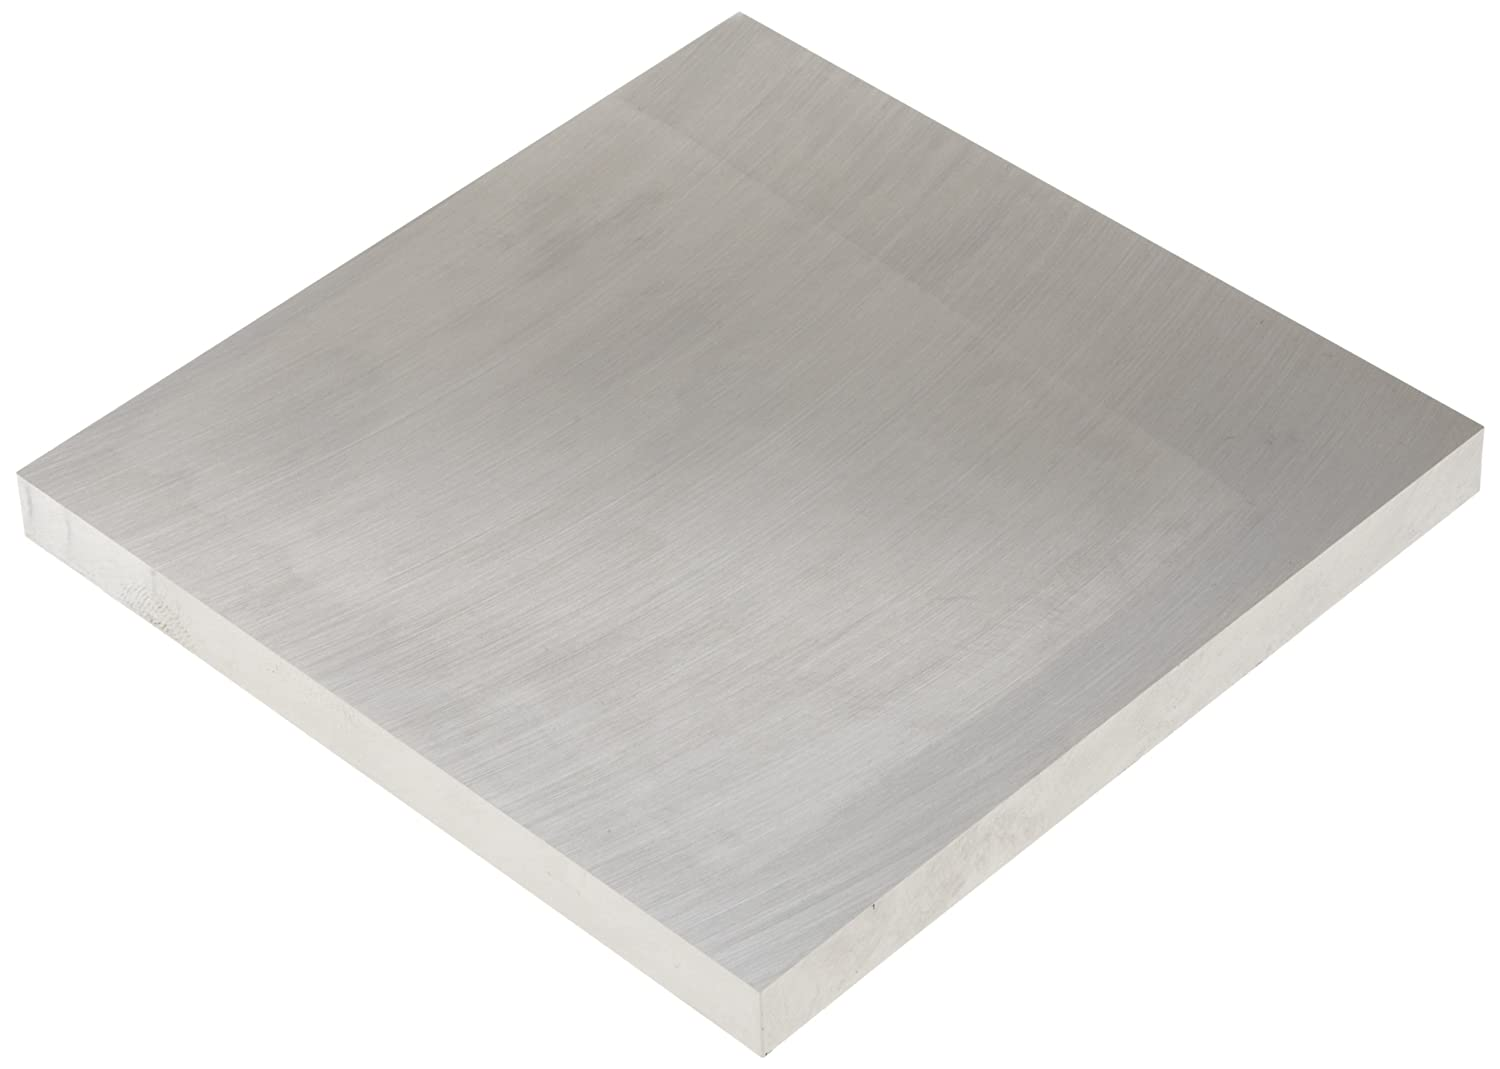 6061 Aluminum Sheet, Precision Ground, T651 Temper, Precision Tolerance, ASTM B209, 0.25' Thickness, 6' Width, 6' Length 0.25 Thickness 6 Width 6 Length Small Parts Inc SB-6061-0250-06-06